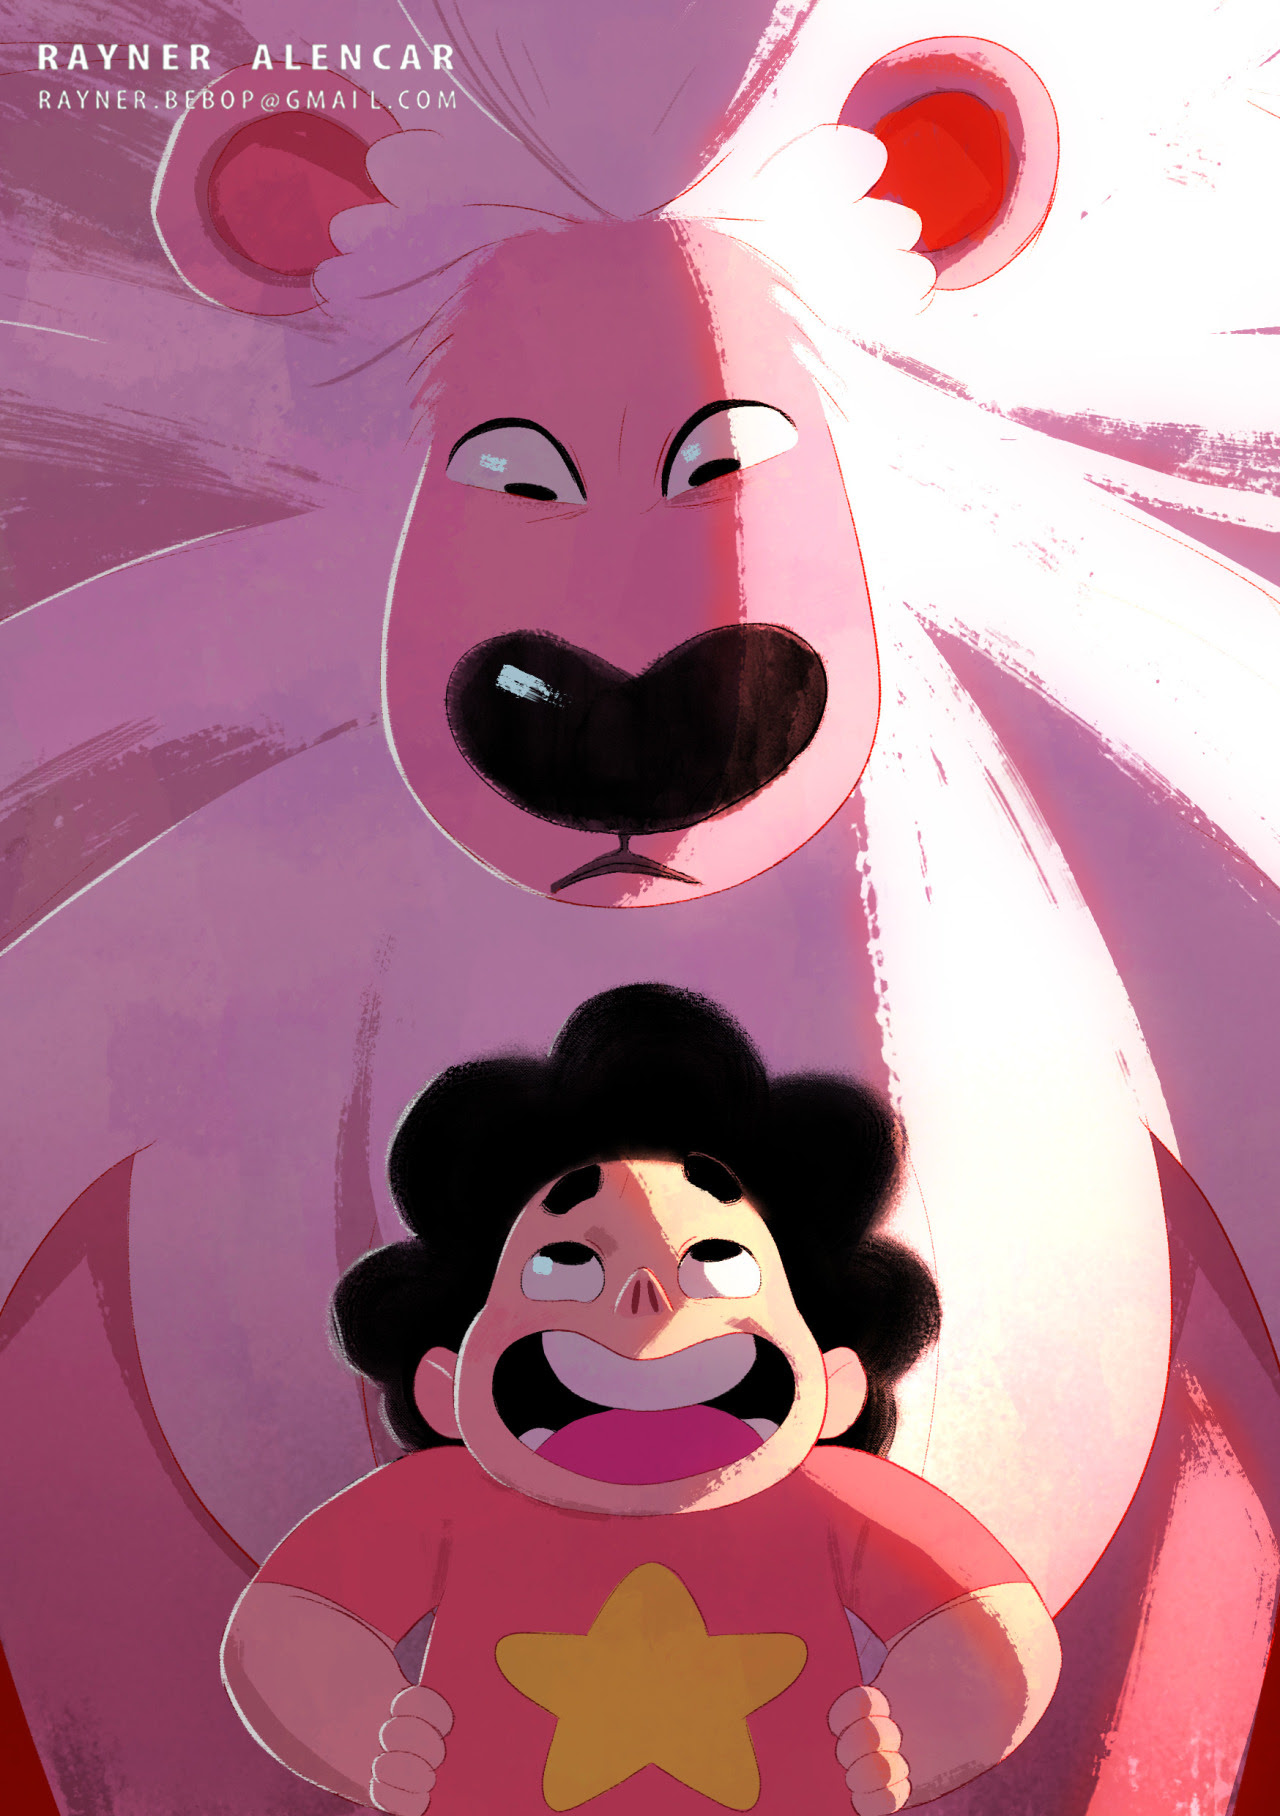 Steven and Lion,